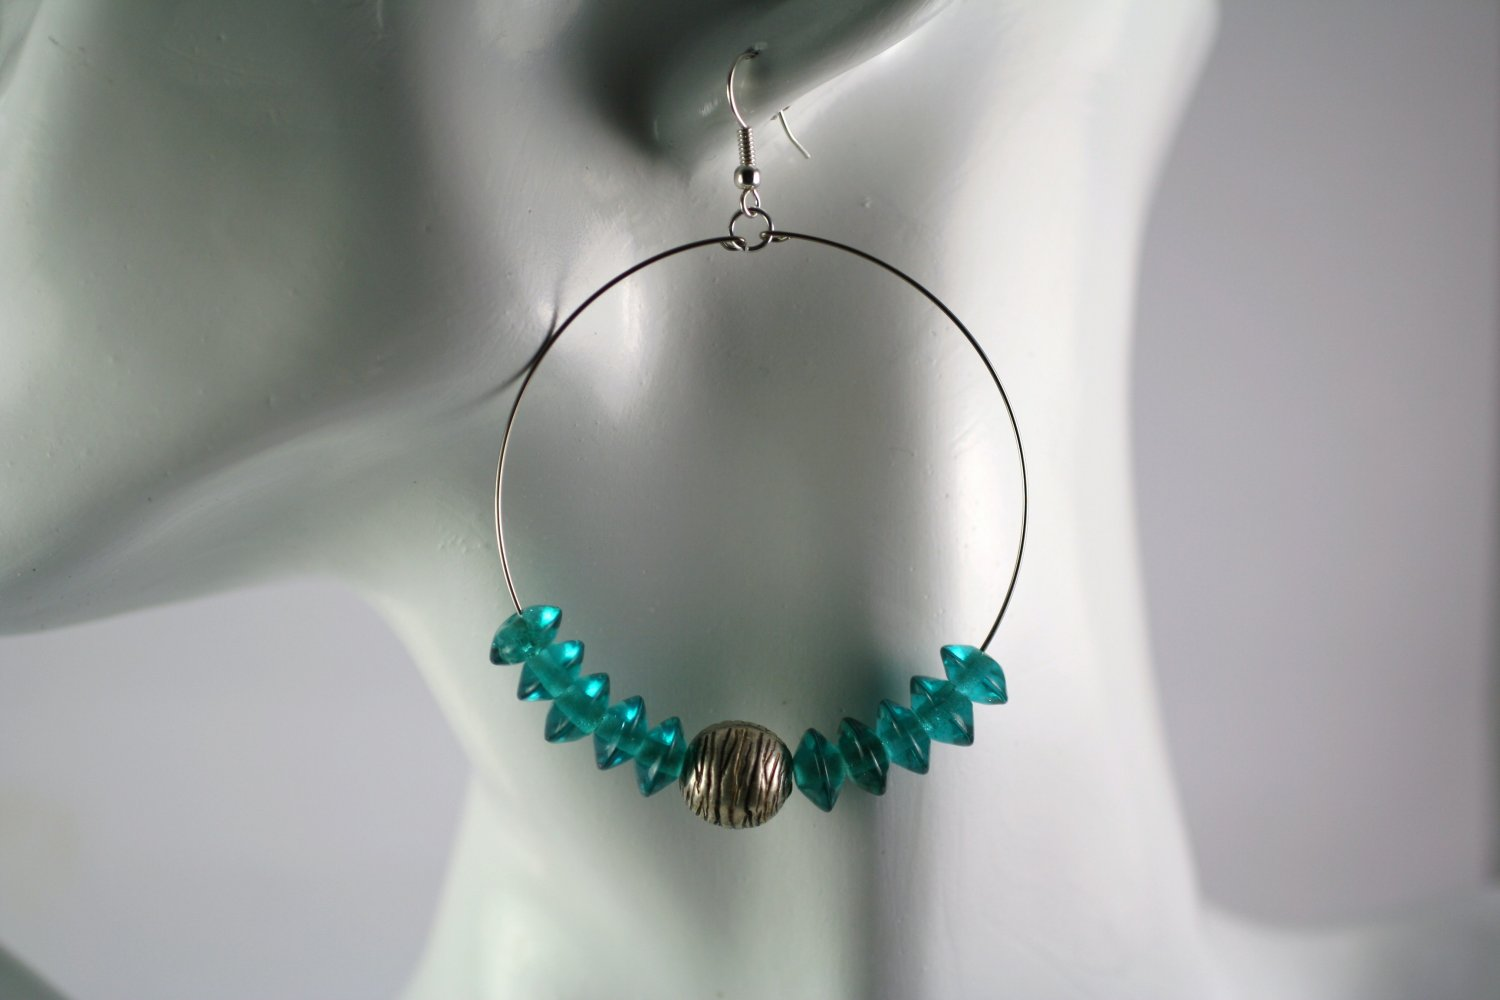 Large Silver Hoop Earrings with Blue Glass Saucer Beads  2 in.  Handcrafted Jewelry